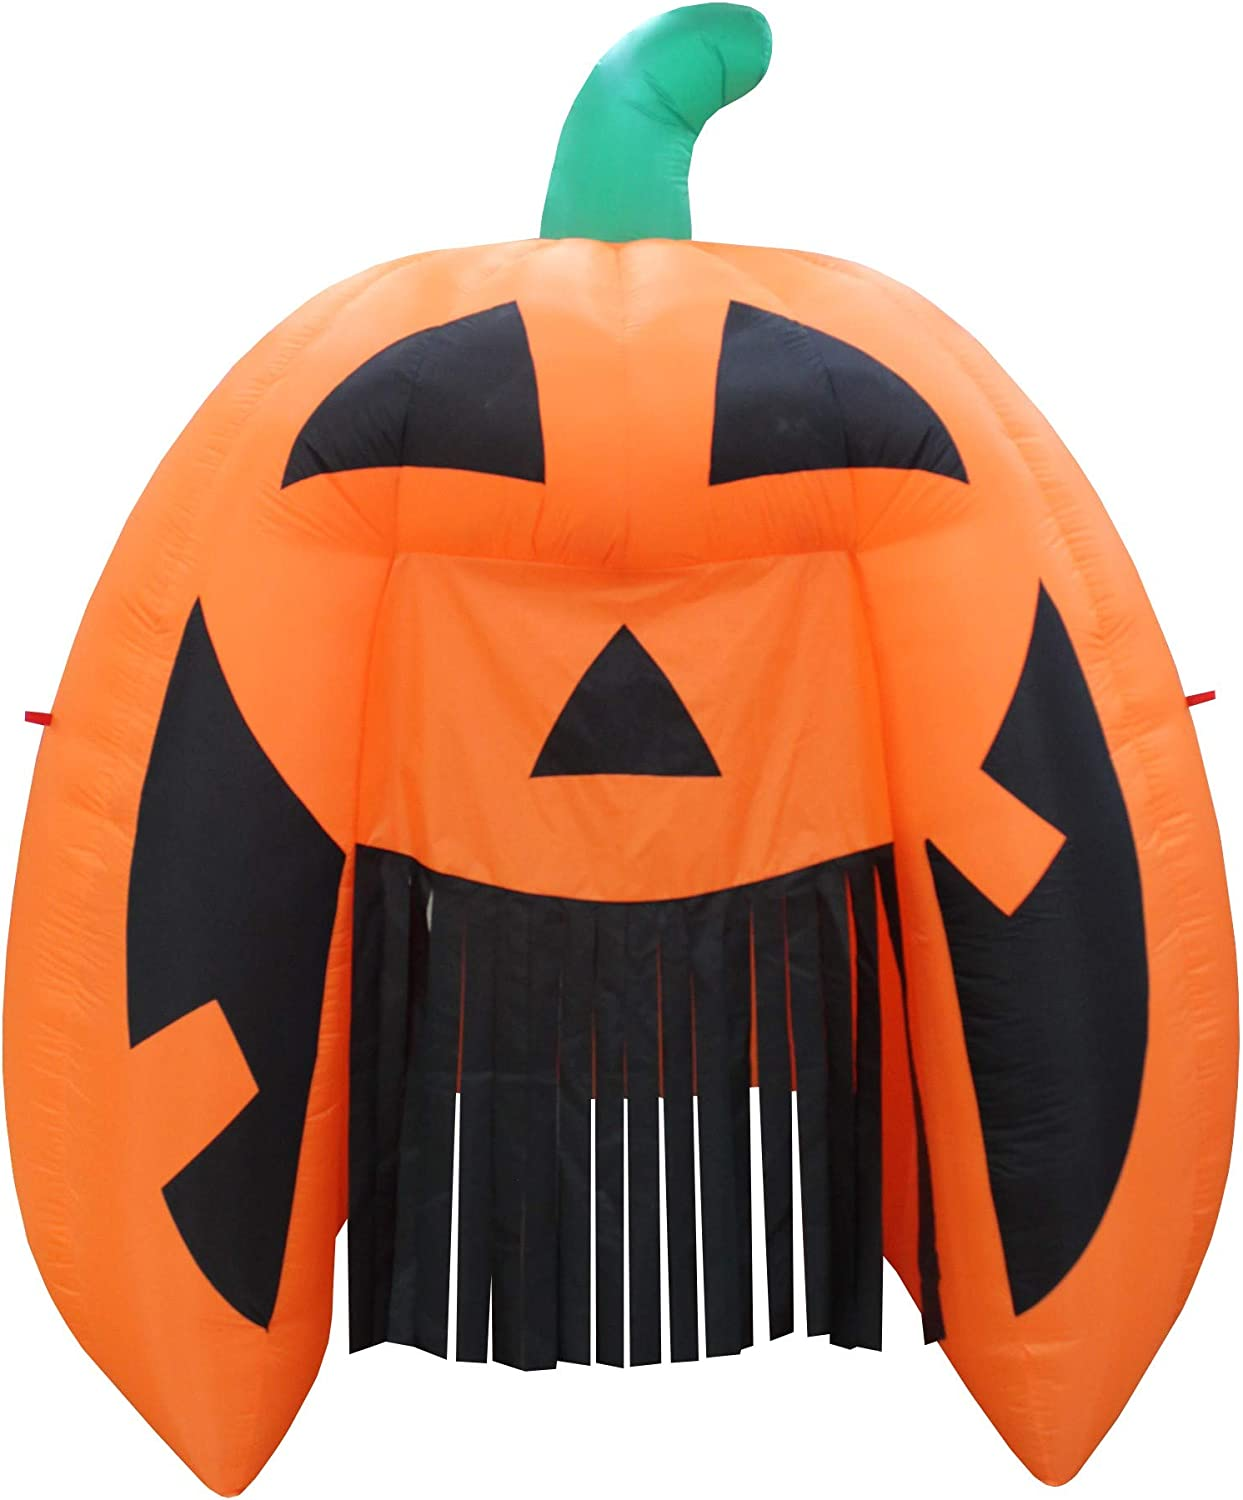 BZB Goods Giant 8 Foot Fixed price for Detroit Mall sale Monster Tall Halloween Inflatable Pumpkin